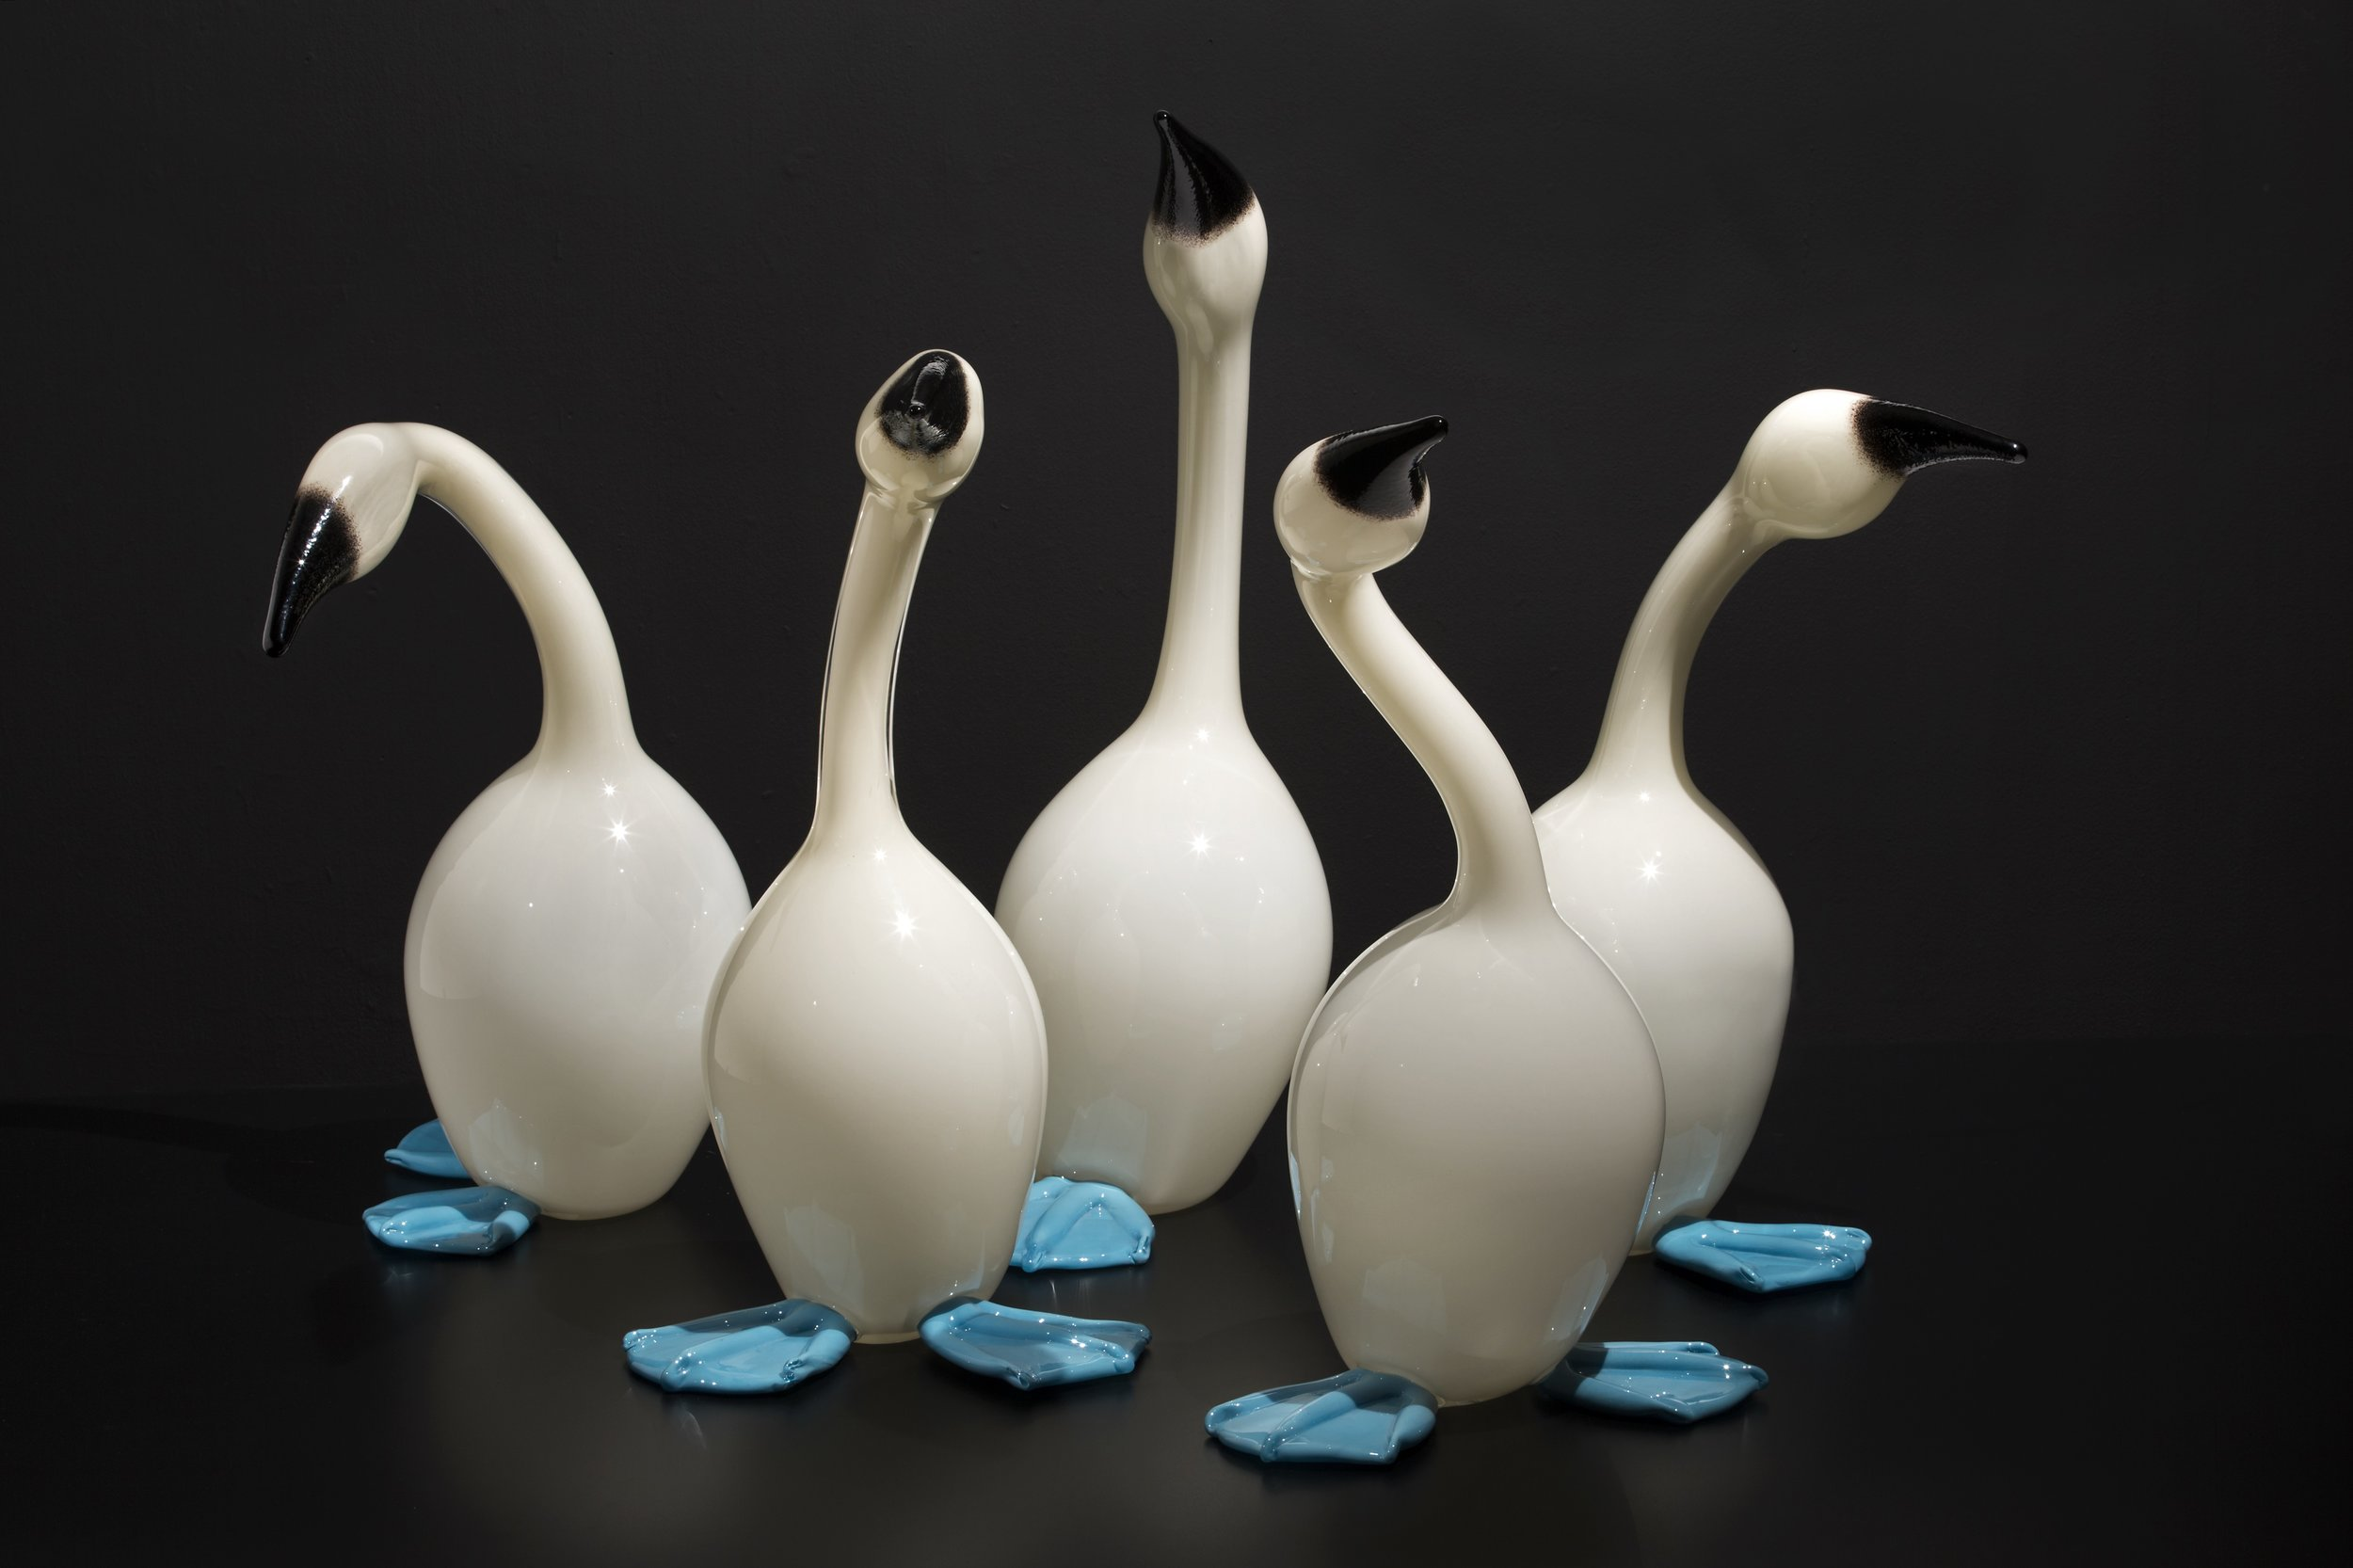 Erich Woll (American, born 1970). Mistakes Will Be Made (Blue-Footed Boobies) , 2014.Hot-sculpted glass.Collection of Museum of Glass, Tacoma, Washington, Gift of the artist. Photo courtesy of the artist.